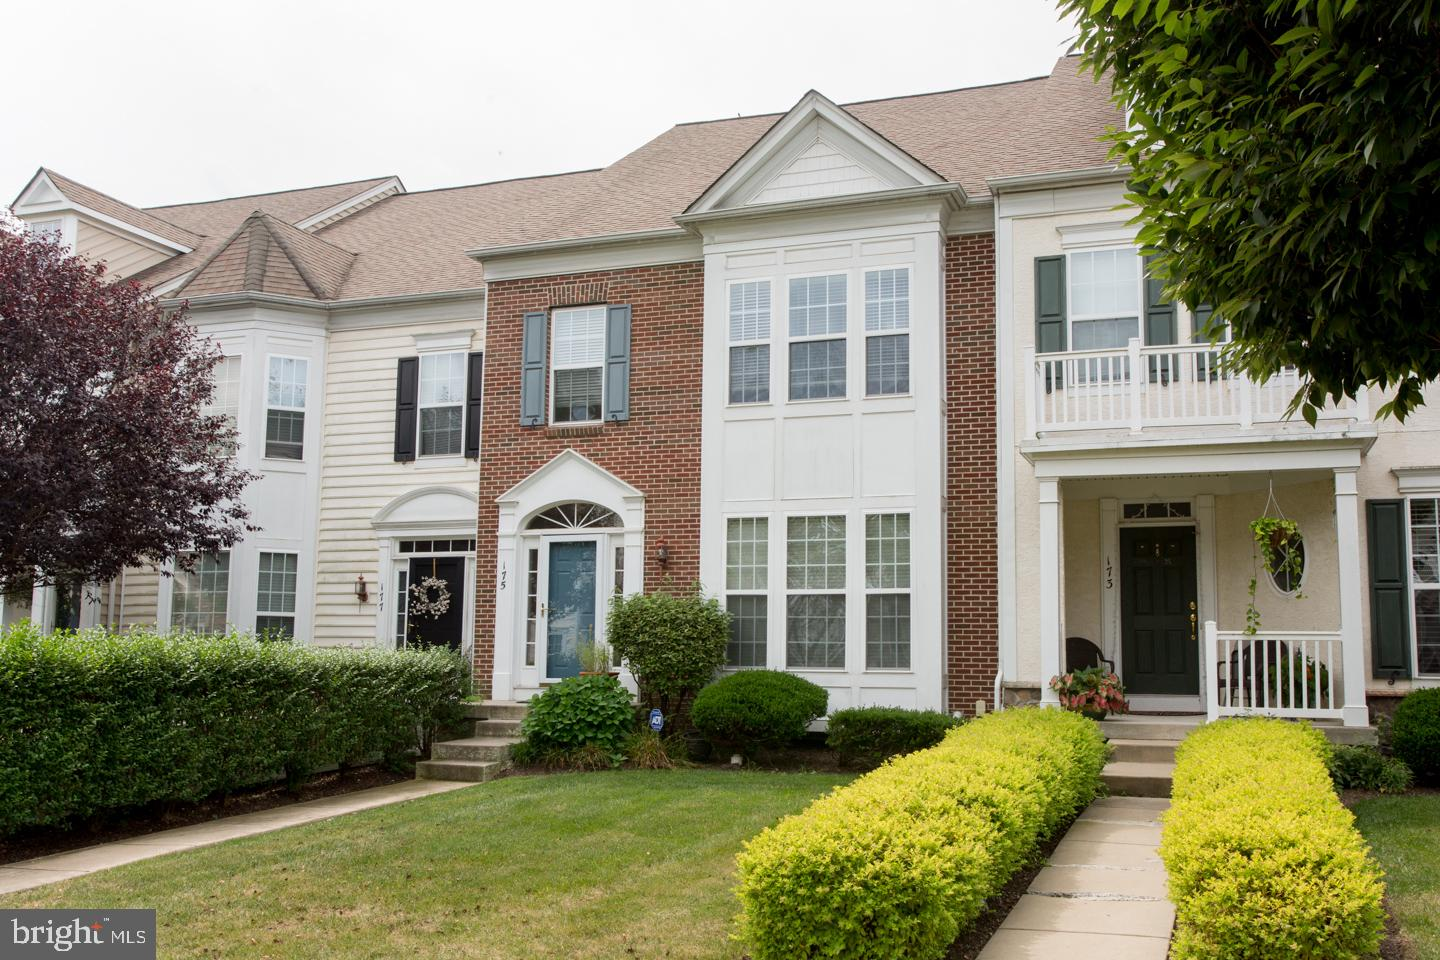 175 PIPERS INN DRIVE, FOUNTAINVILLE, PA 18923